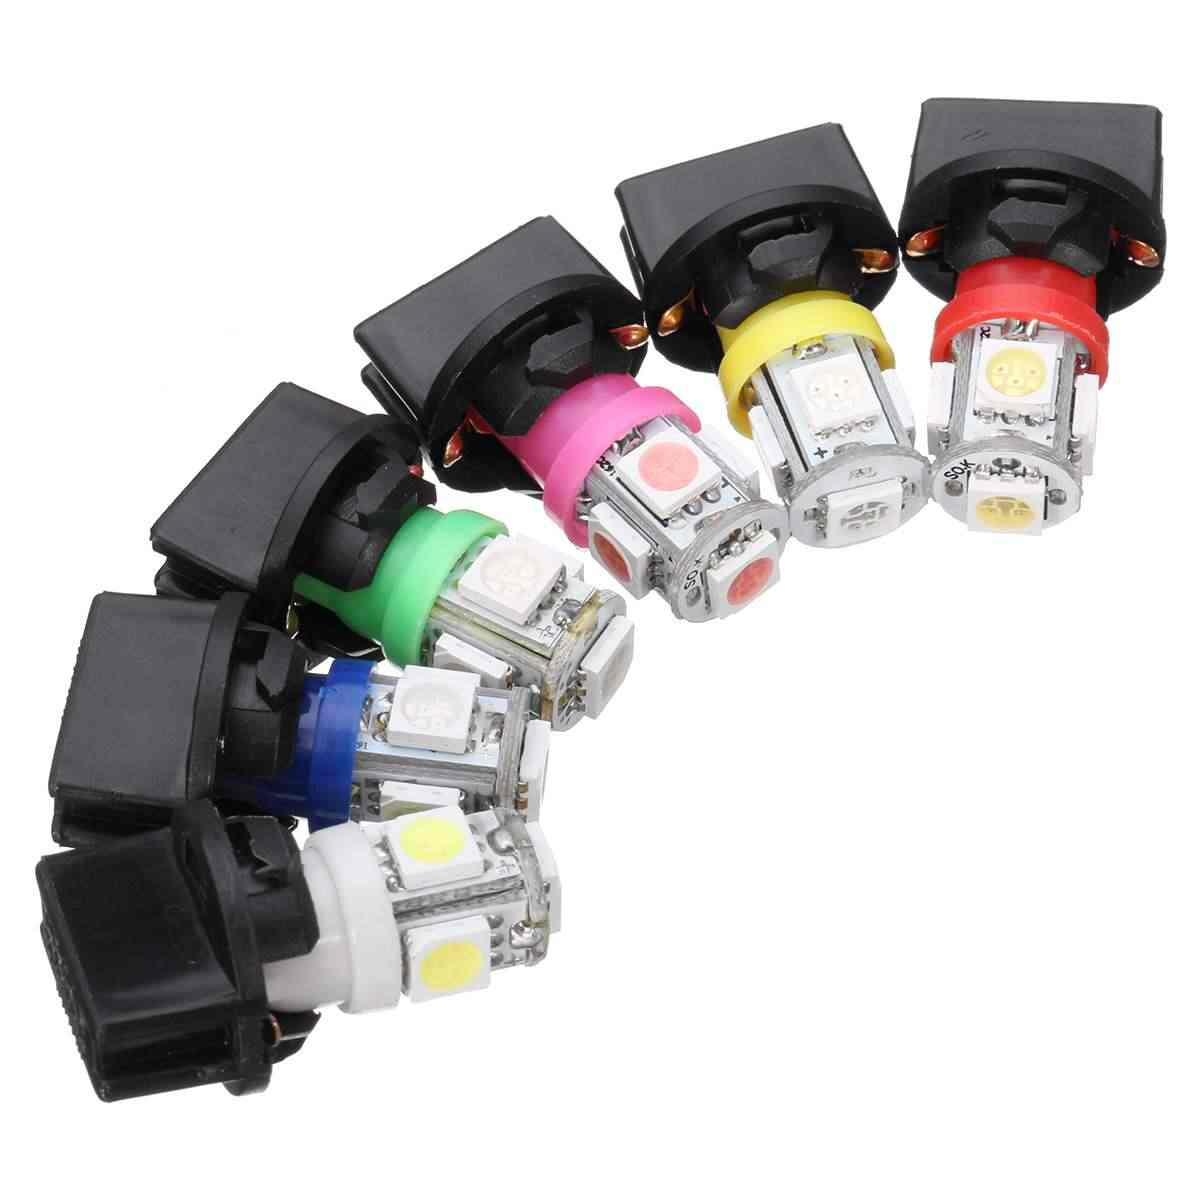 10x T10 W/Socket SMD 5050 194 LED Bulbs Instrument Panel Dashboard Glove Box Side Interior Gauge Cluster Dash Light Signal Lamp